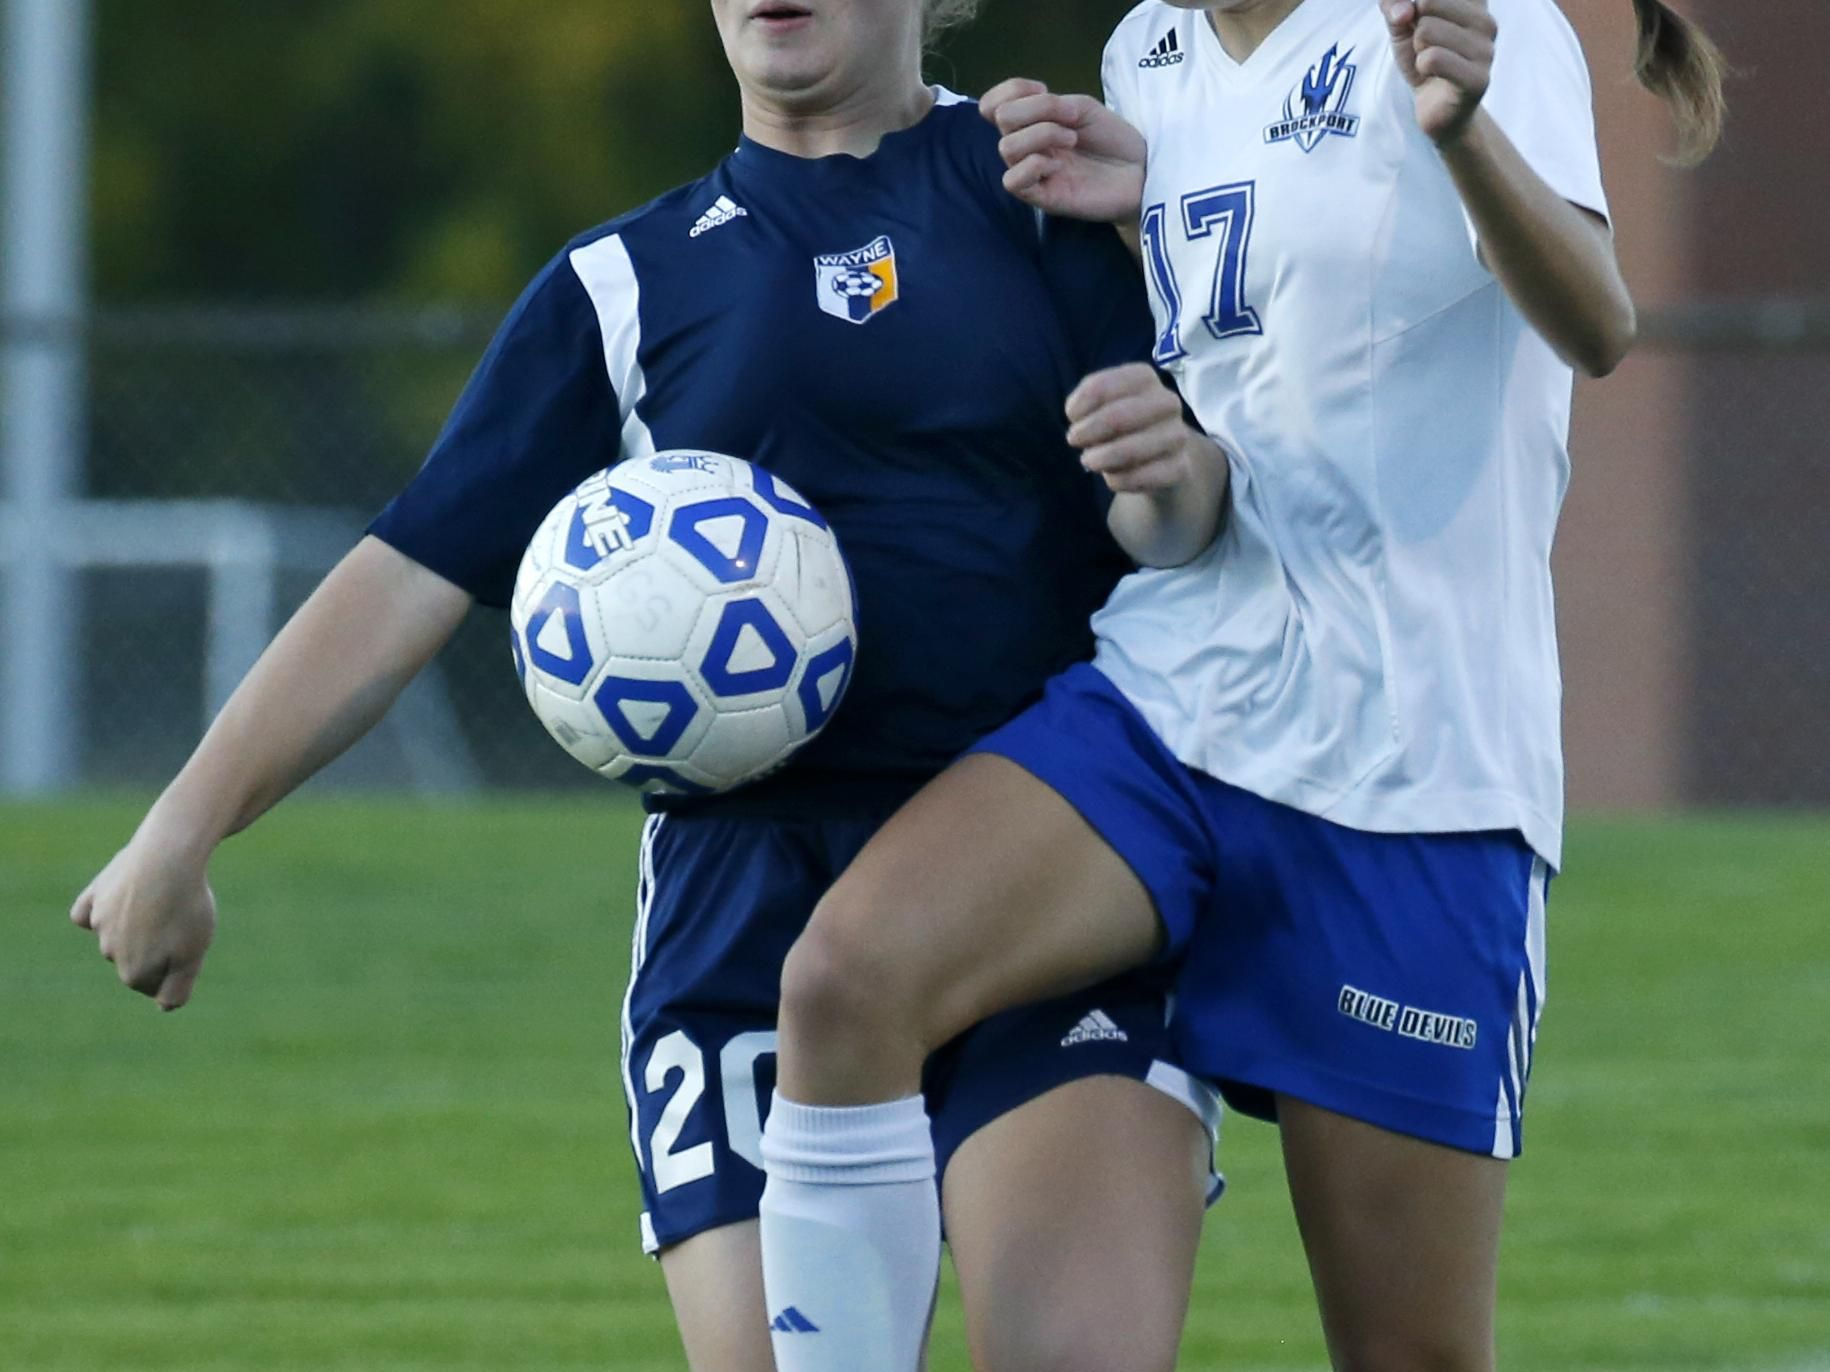 Wayne's Hannah Burns, left, and Brockport's Leah Daly battle for a loose ball during the first half Wednesday at Brockport High School.